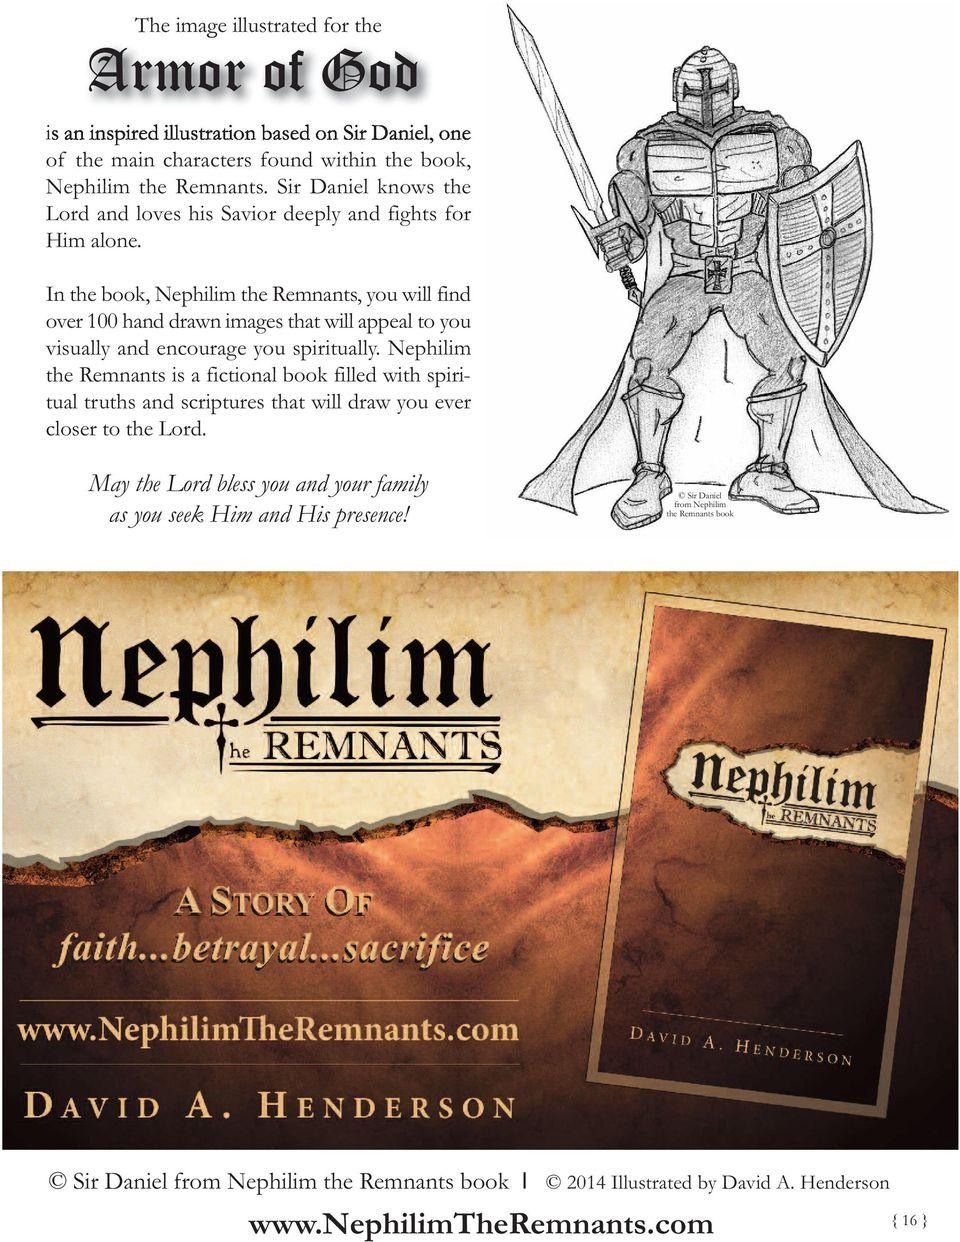 In the book, Nephilim the Remnants, you will find over 100 hand drawn images that will appeal to you visually and encourage you spiritually.